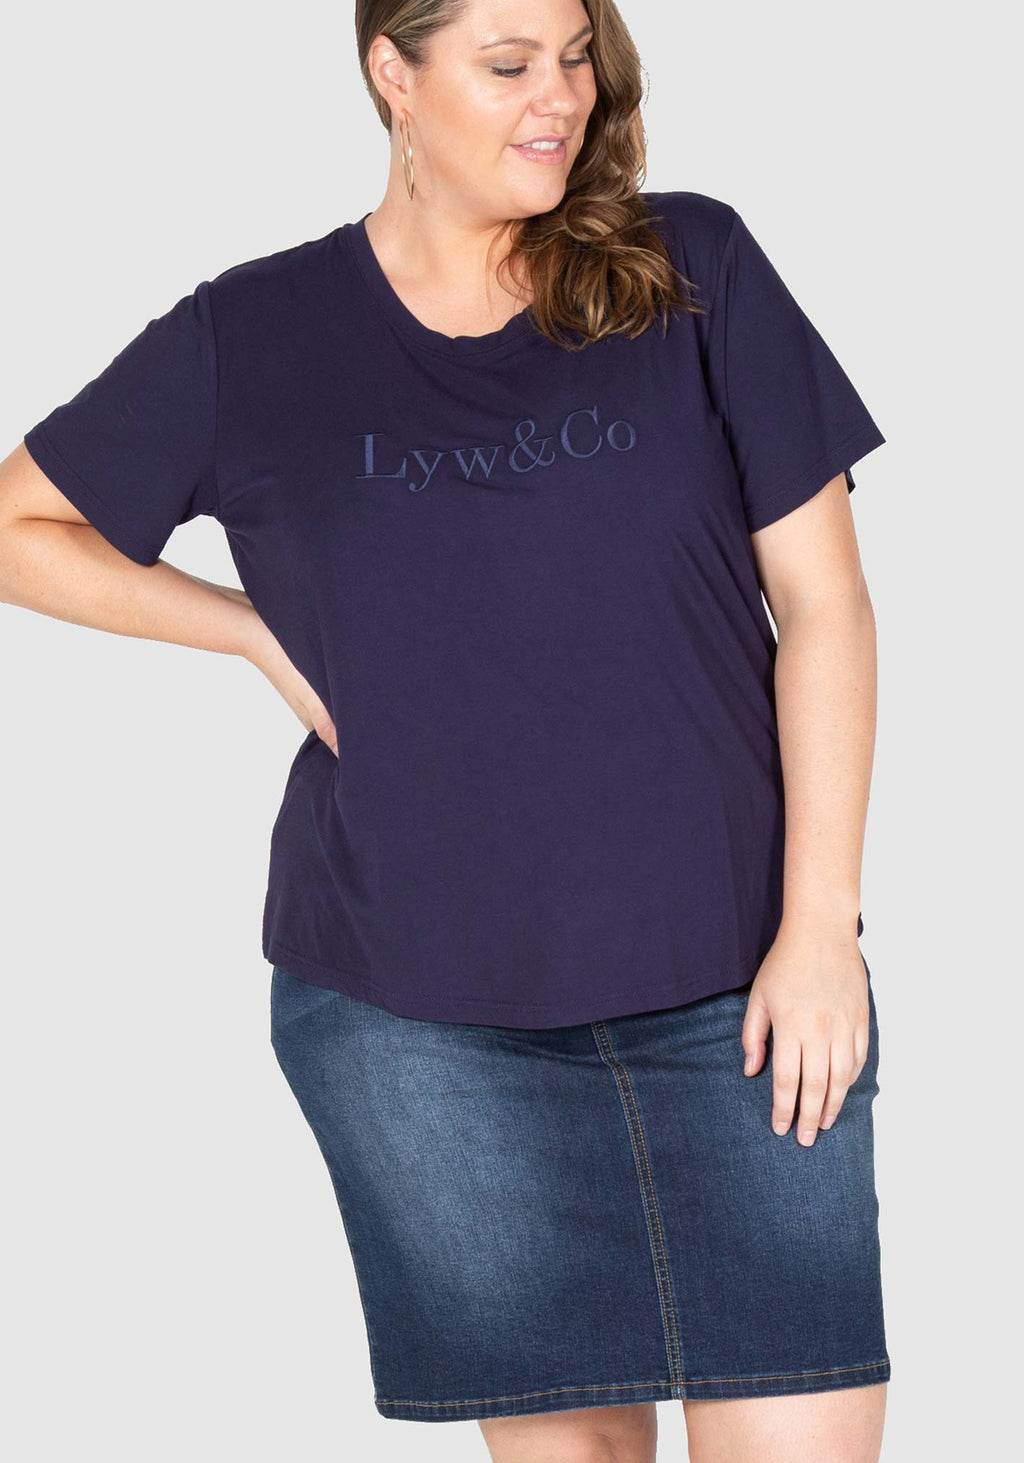 Embroidered LYW & Co Tee - Navy